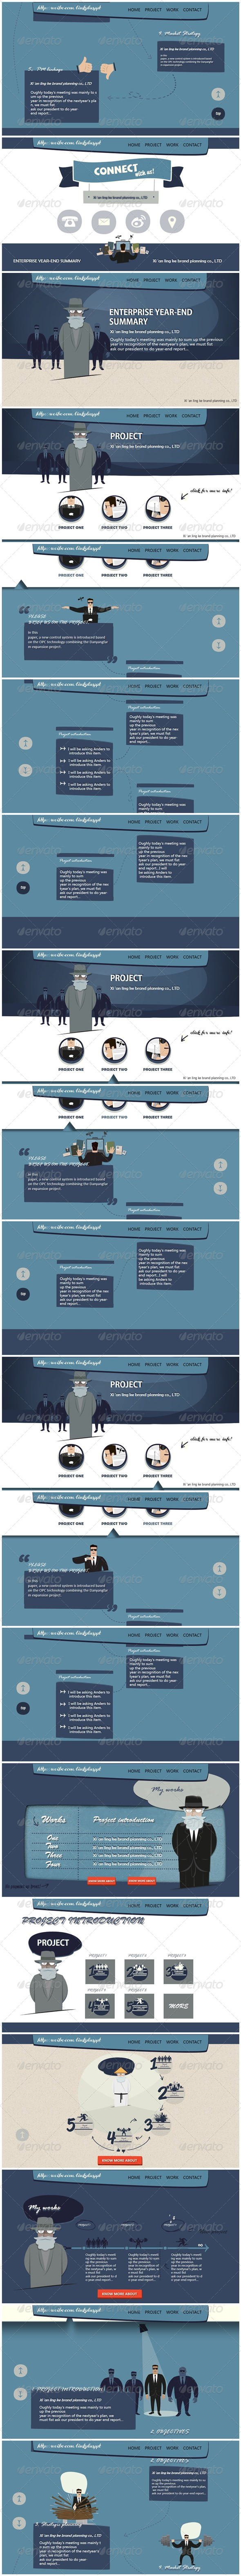 GraphicRiver Cartoon annual summary PowerPoint Presentation 6500569